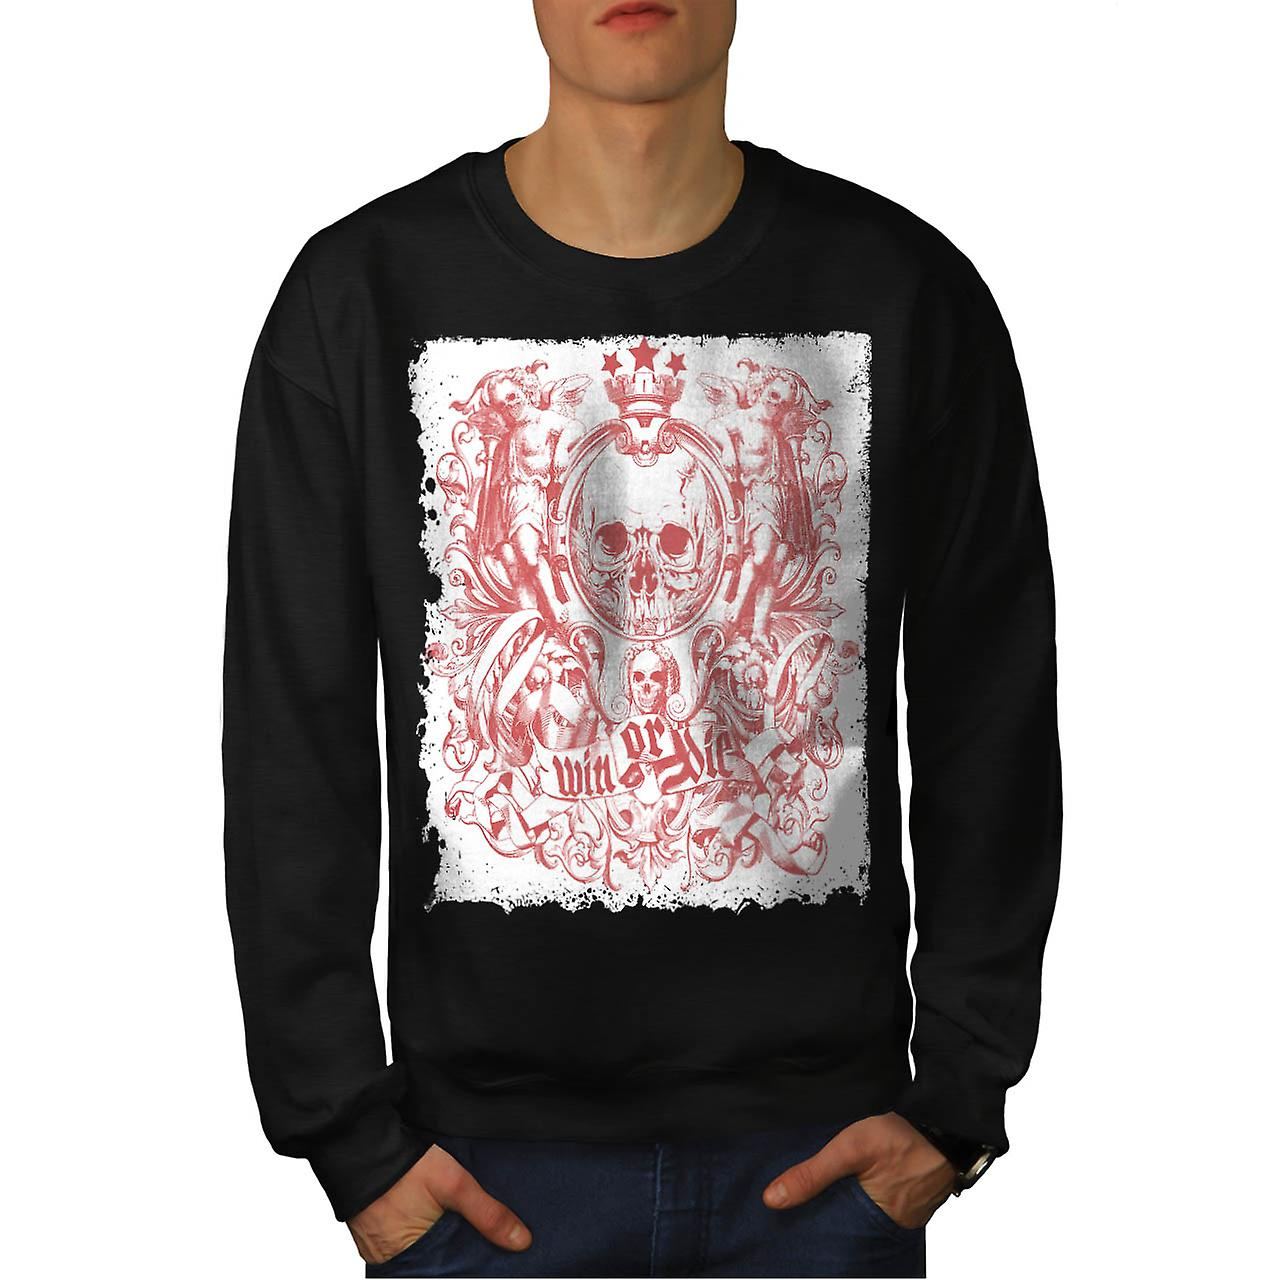 Vinn Die død Skull Royal Crown menn svart Sweatshirt | Wellcoda